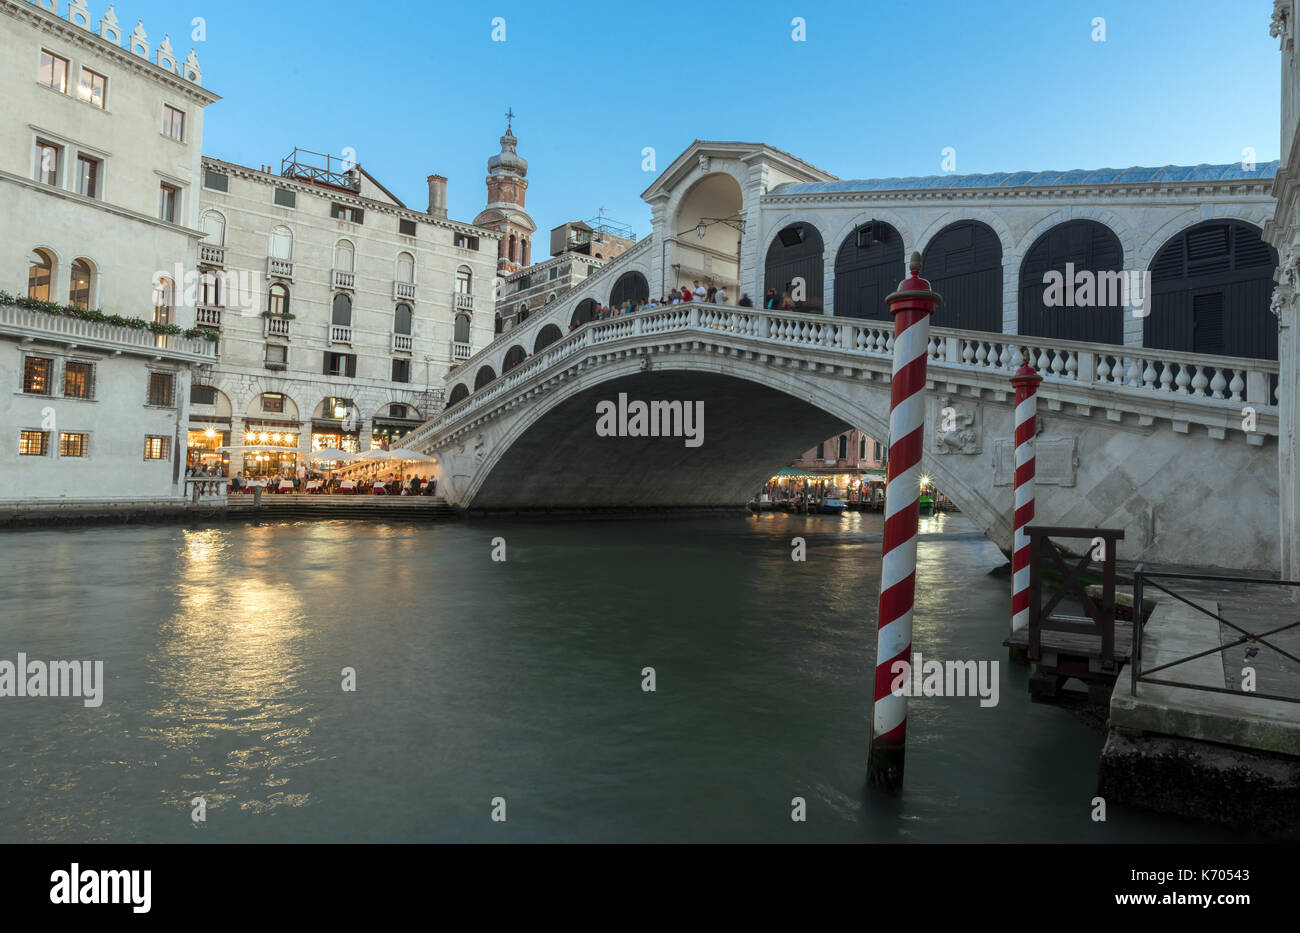 The Grand canal and Rialto bridge at evening, Venice, Italy. - Stock Image